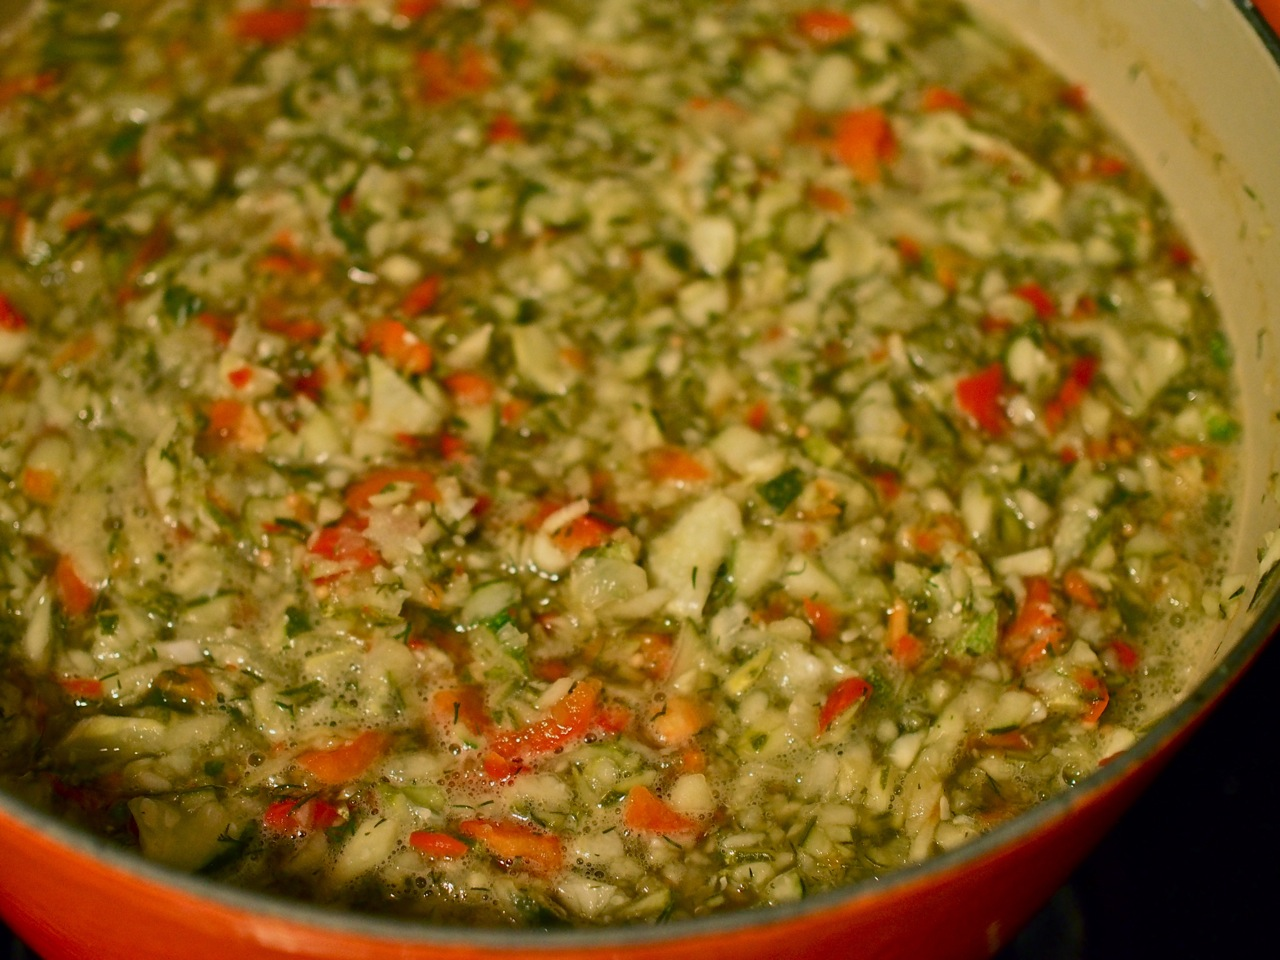 Cooking relish